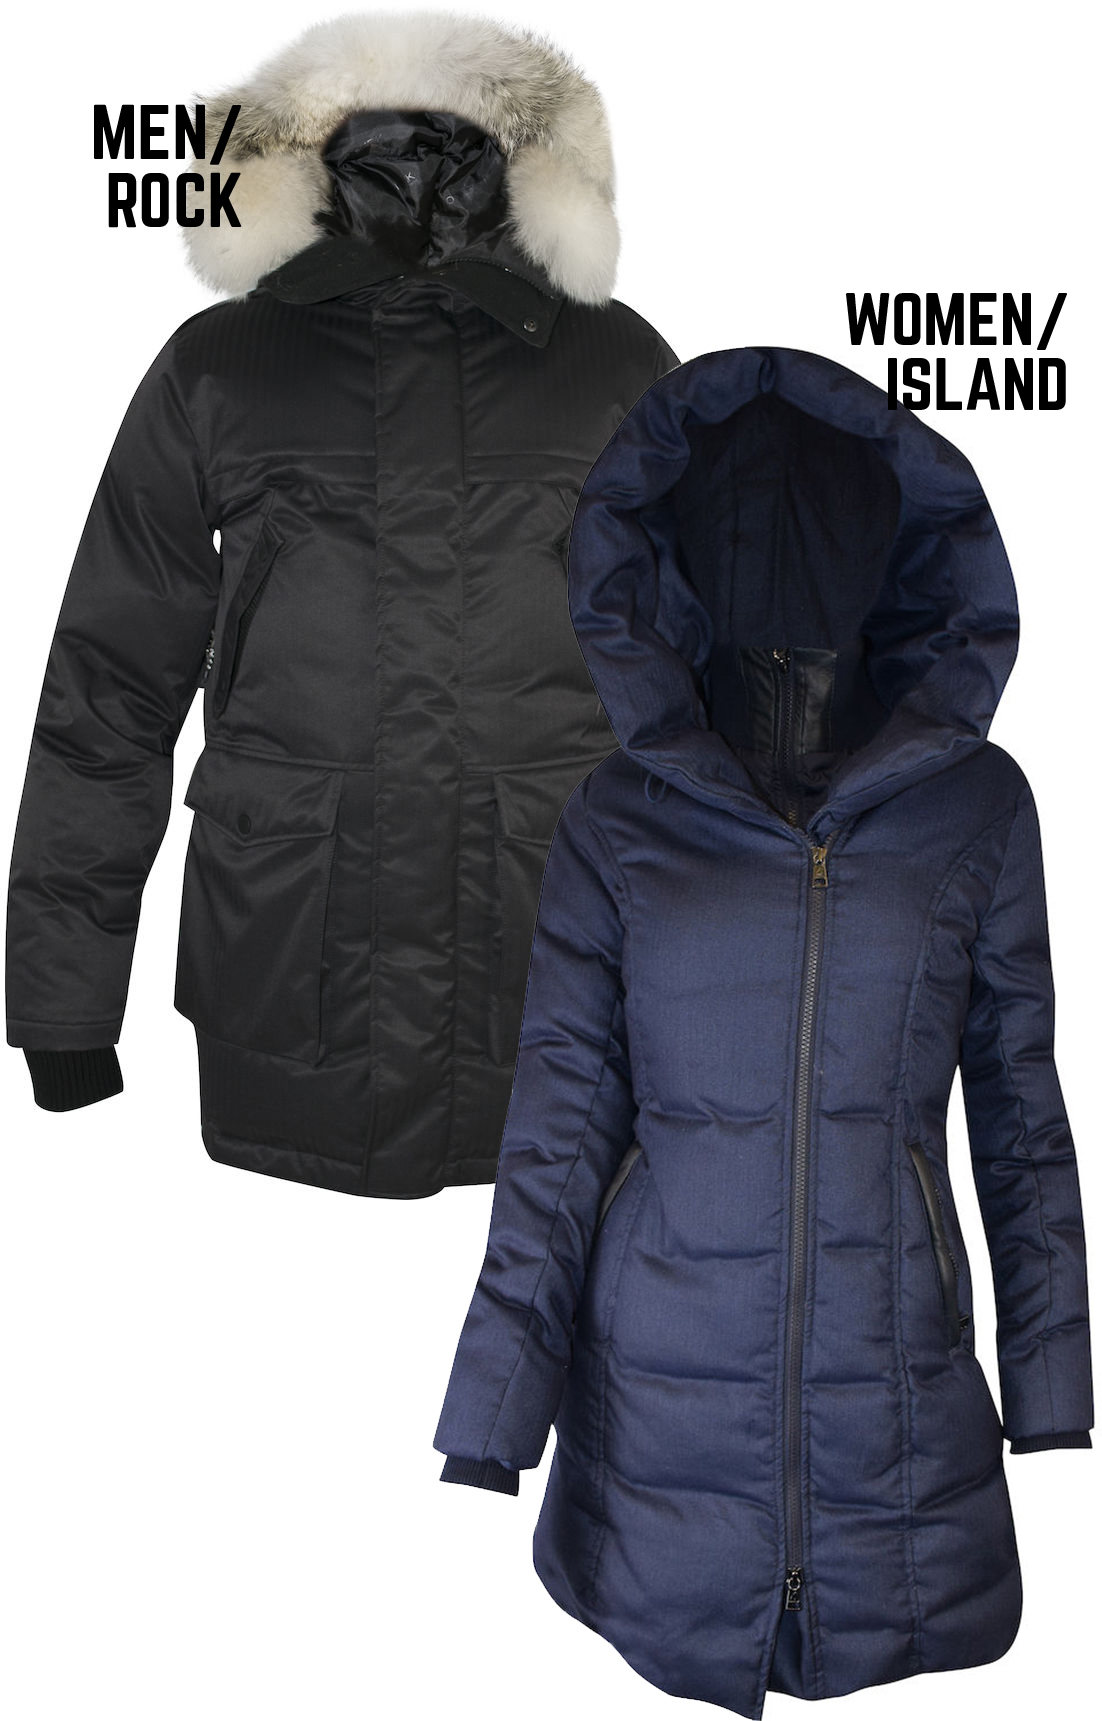 Ookpik winter jackets